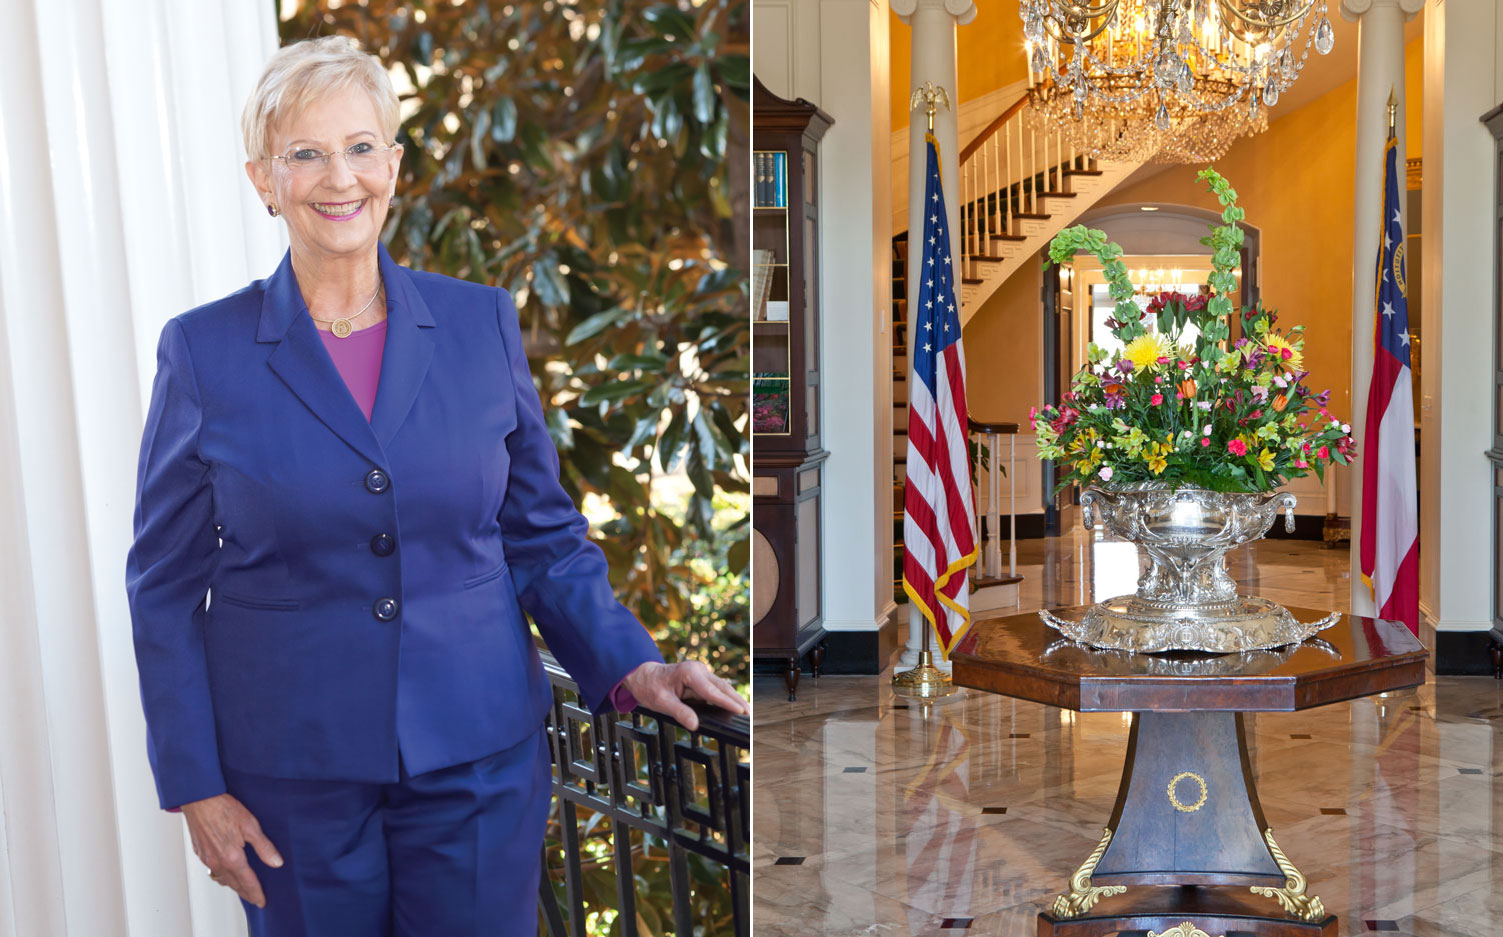 A photo of Georgia First Lady Sandra Deal and the inside of the Governor's Mansion in Atlanta